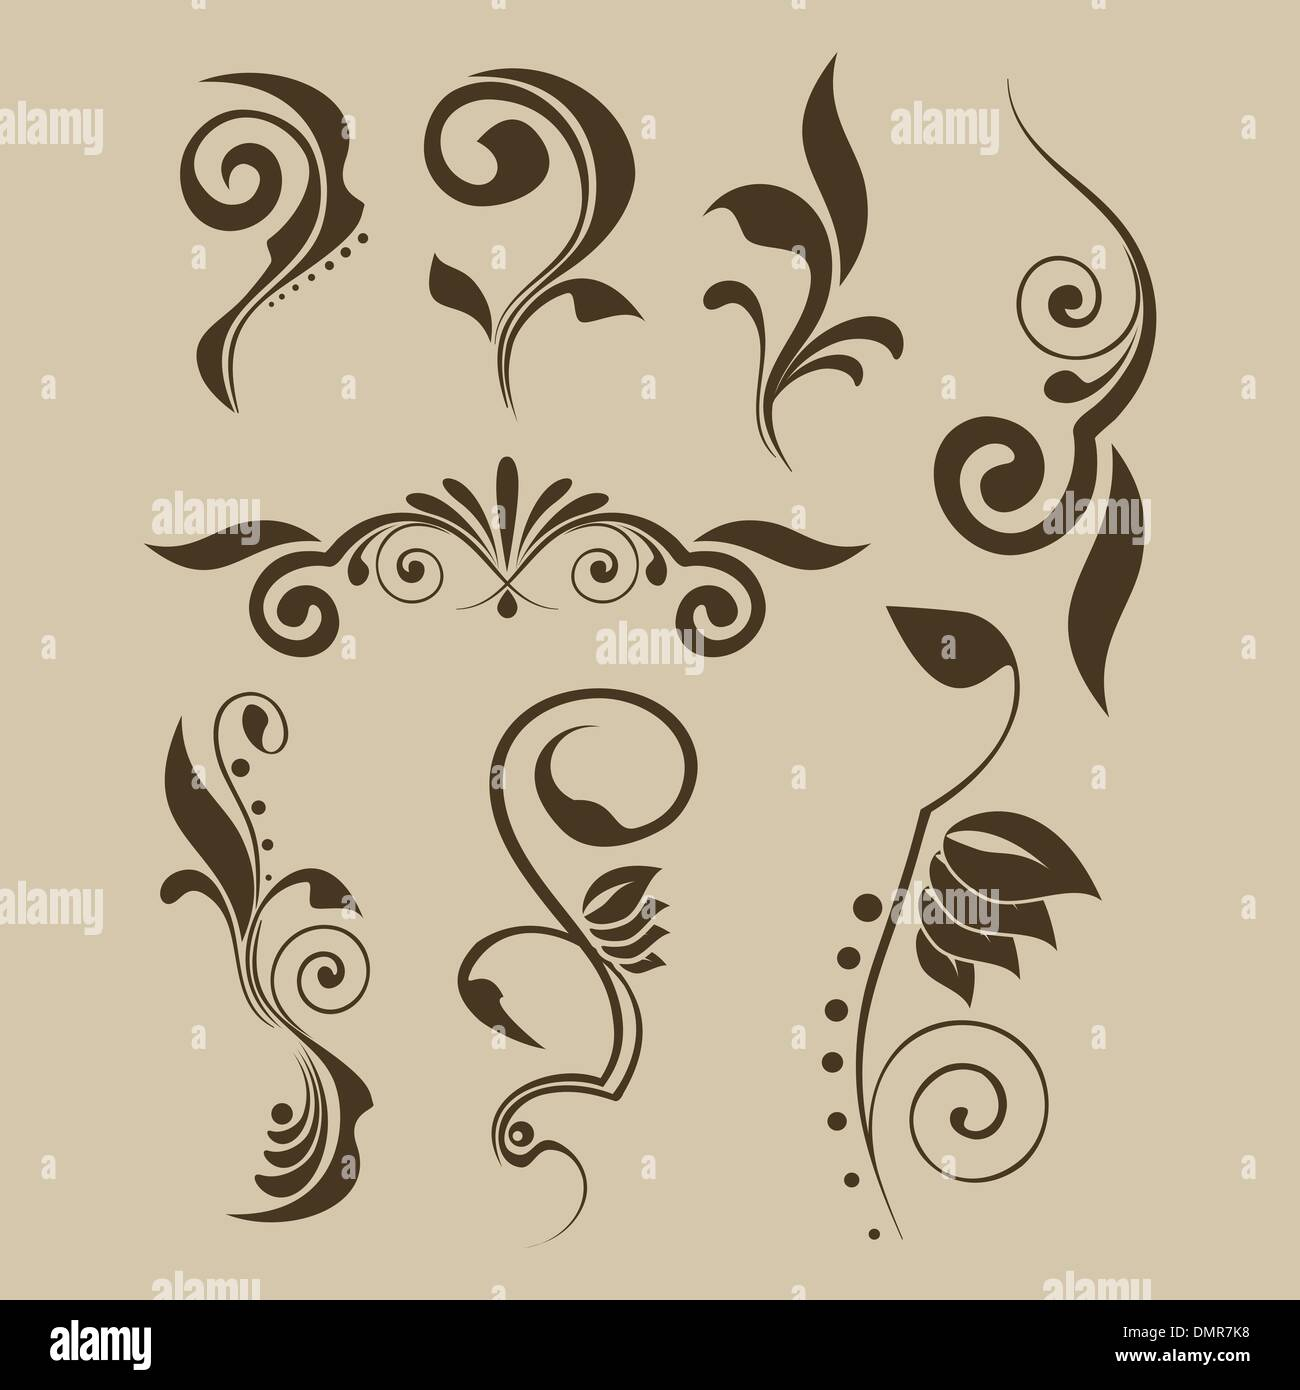 Set of vector patterns for design - Stock Image